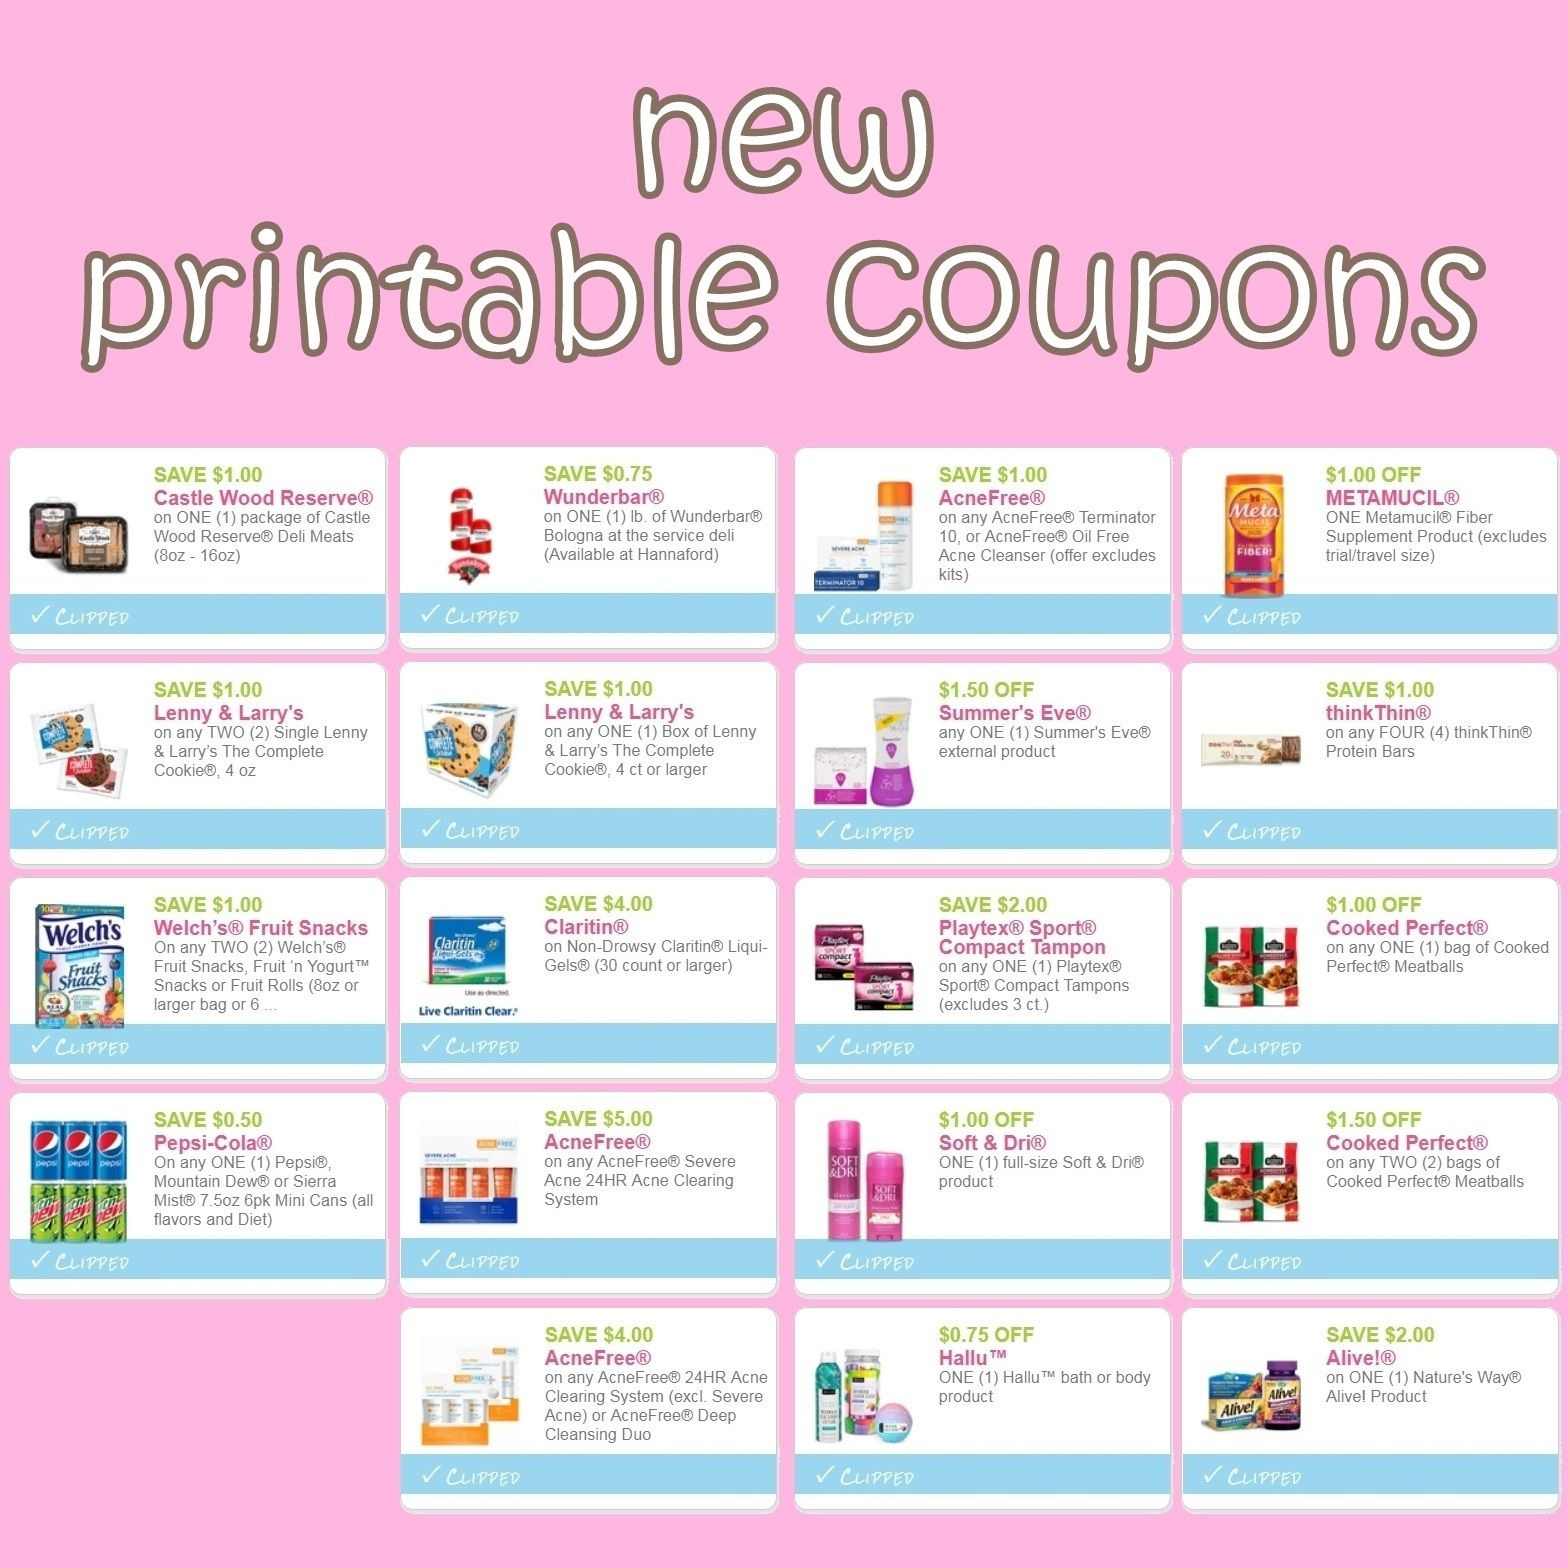 Pinerica Hart On I ♥ Coupons | Printable Coupons, Coupons - Acne Free Coupons Printable